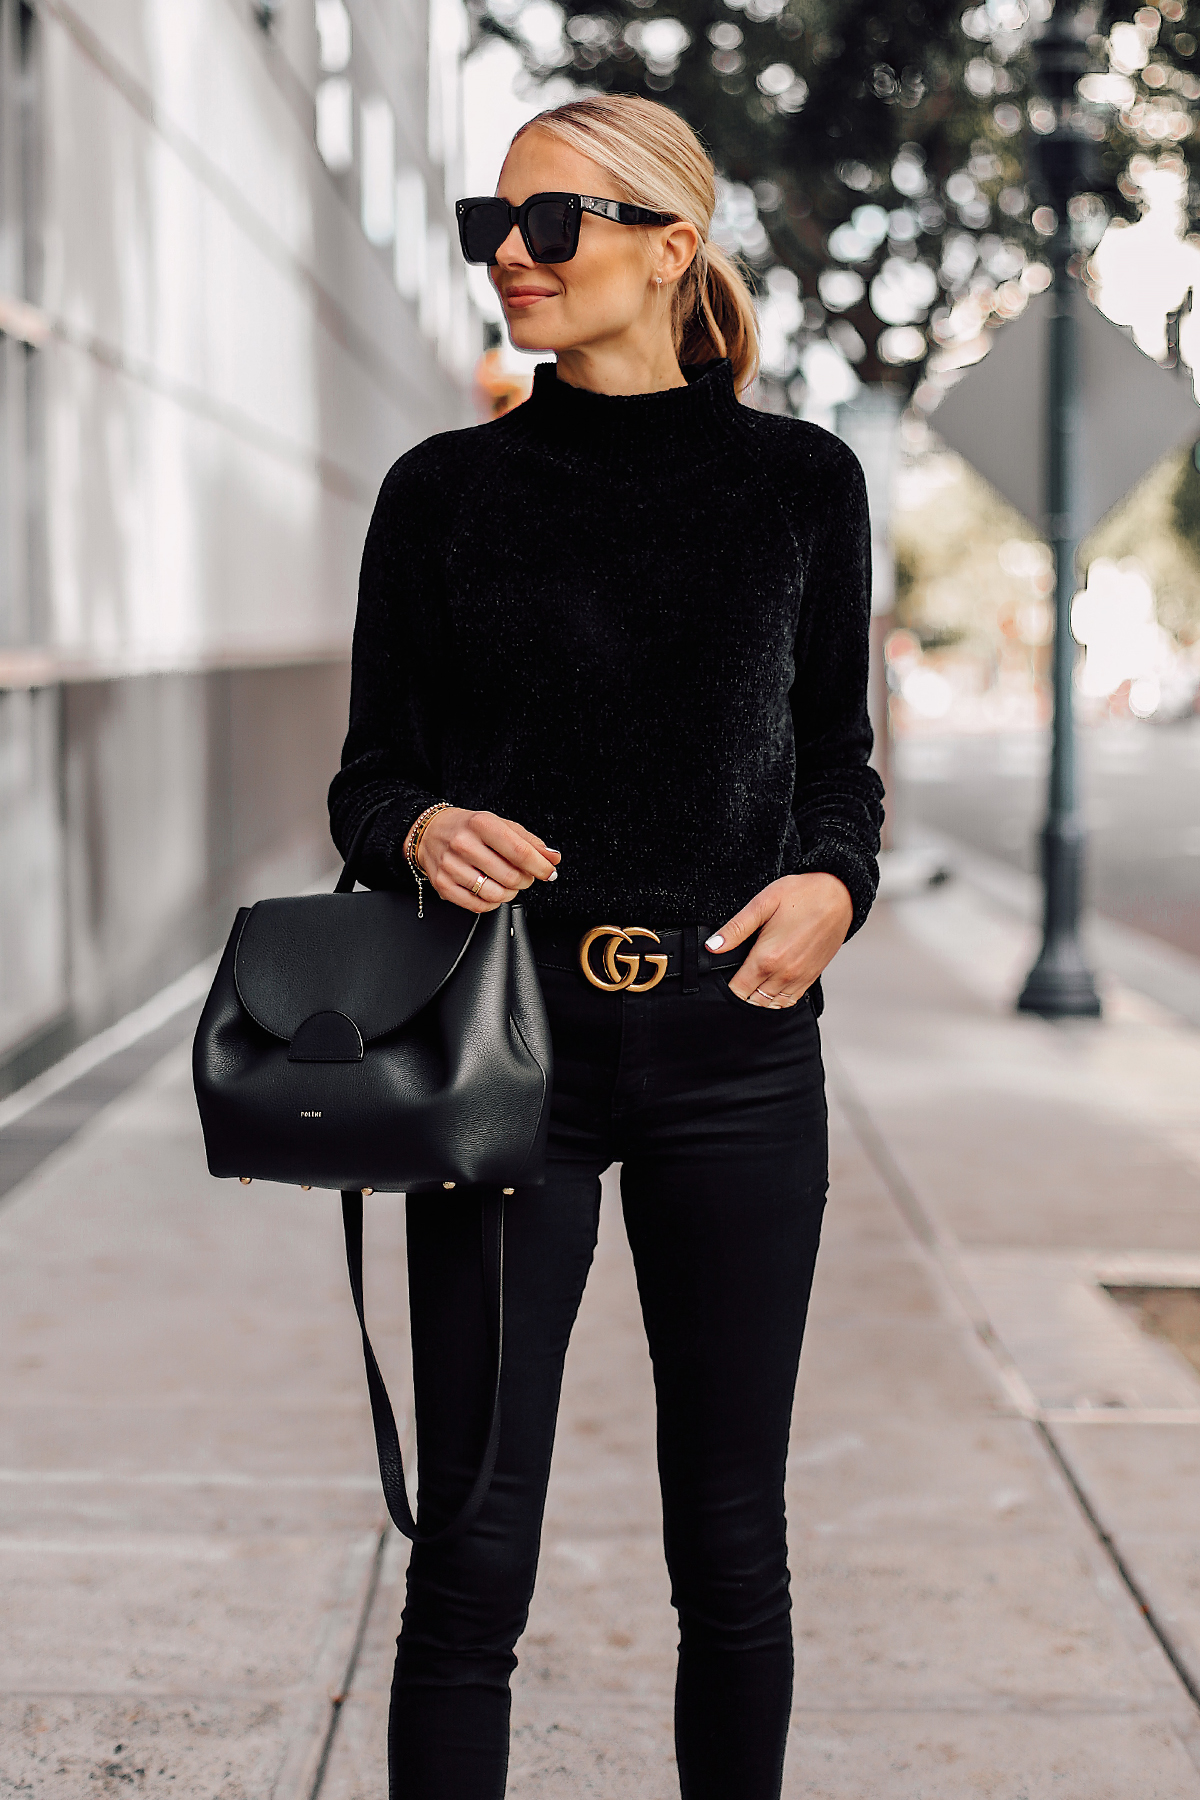 Blonde Woman Wearing Black Chenille Mock Neck Sweater Black Skinny Jeans Black Gucci Belt Black Satchel Handbag Fashion Jackson San Diego Fashion Blogger Street Style